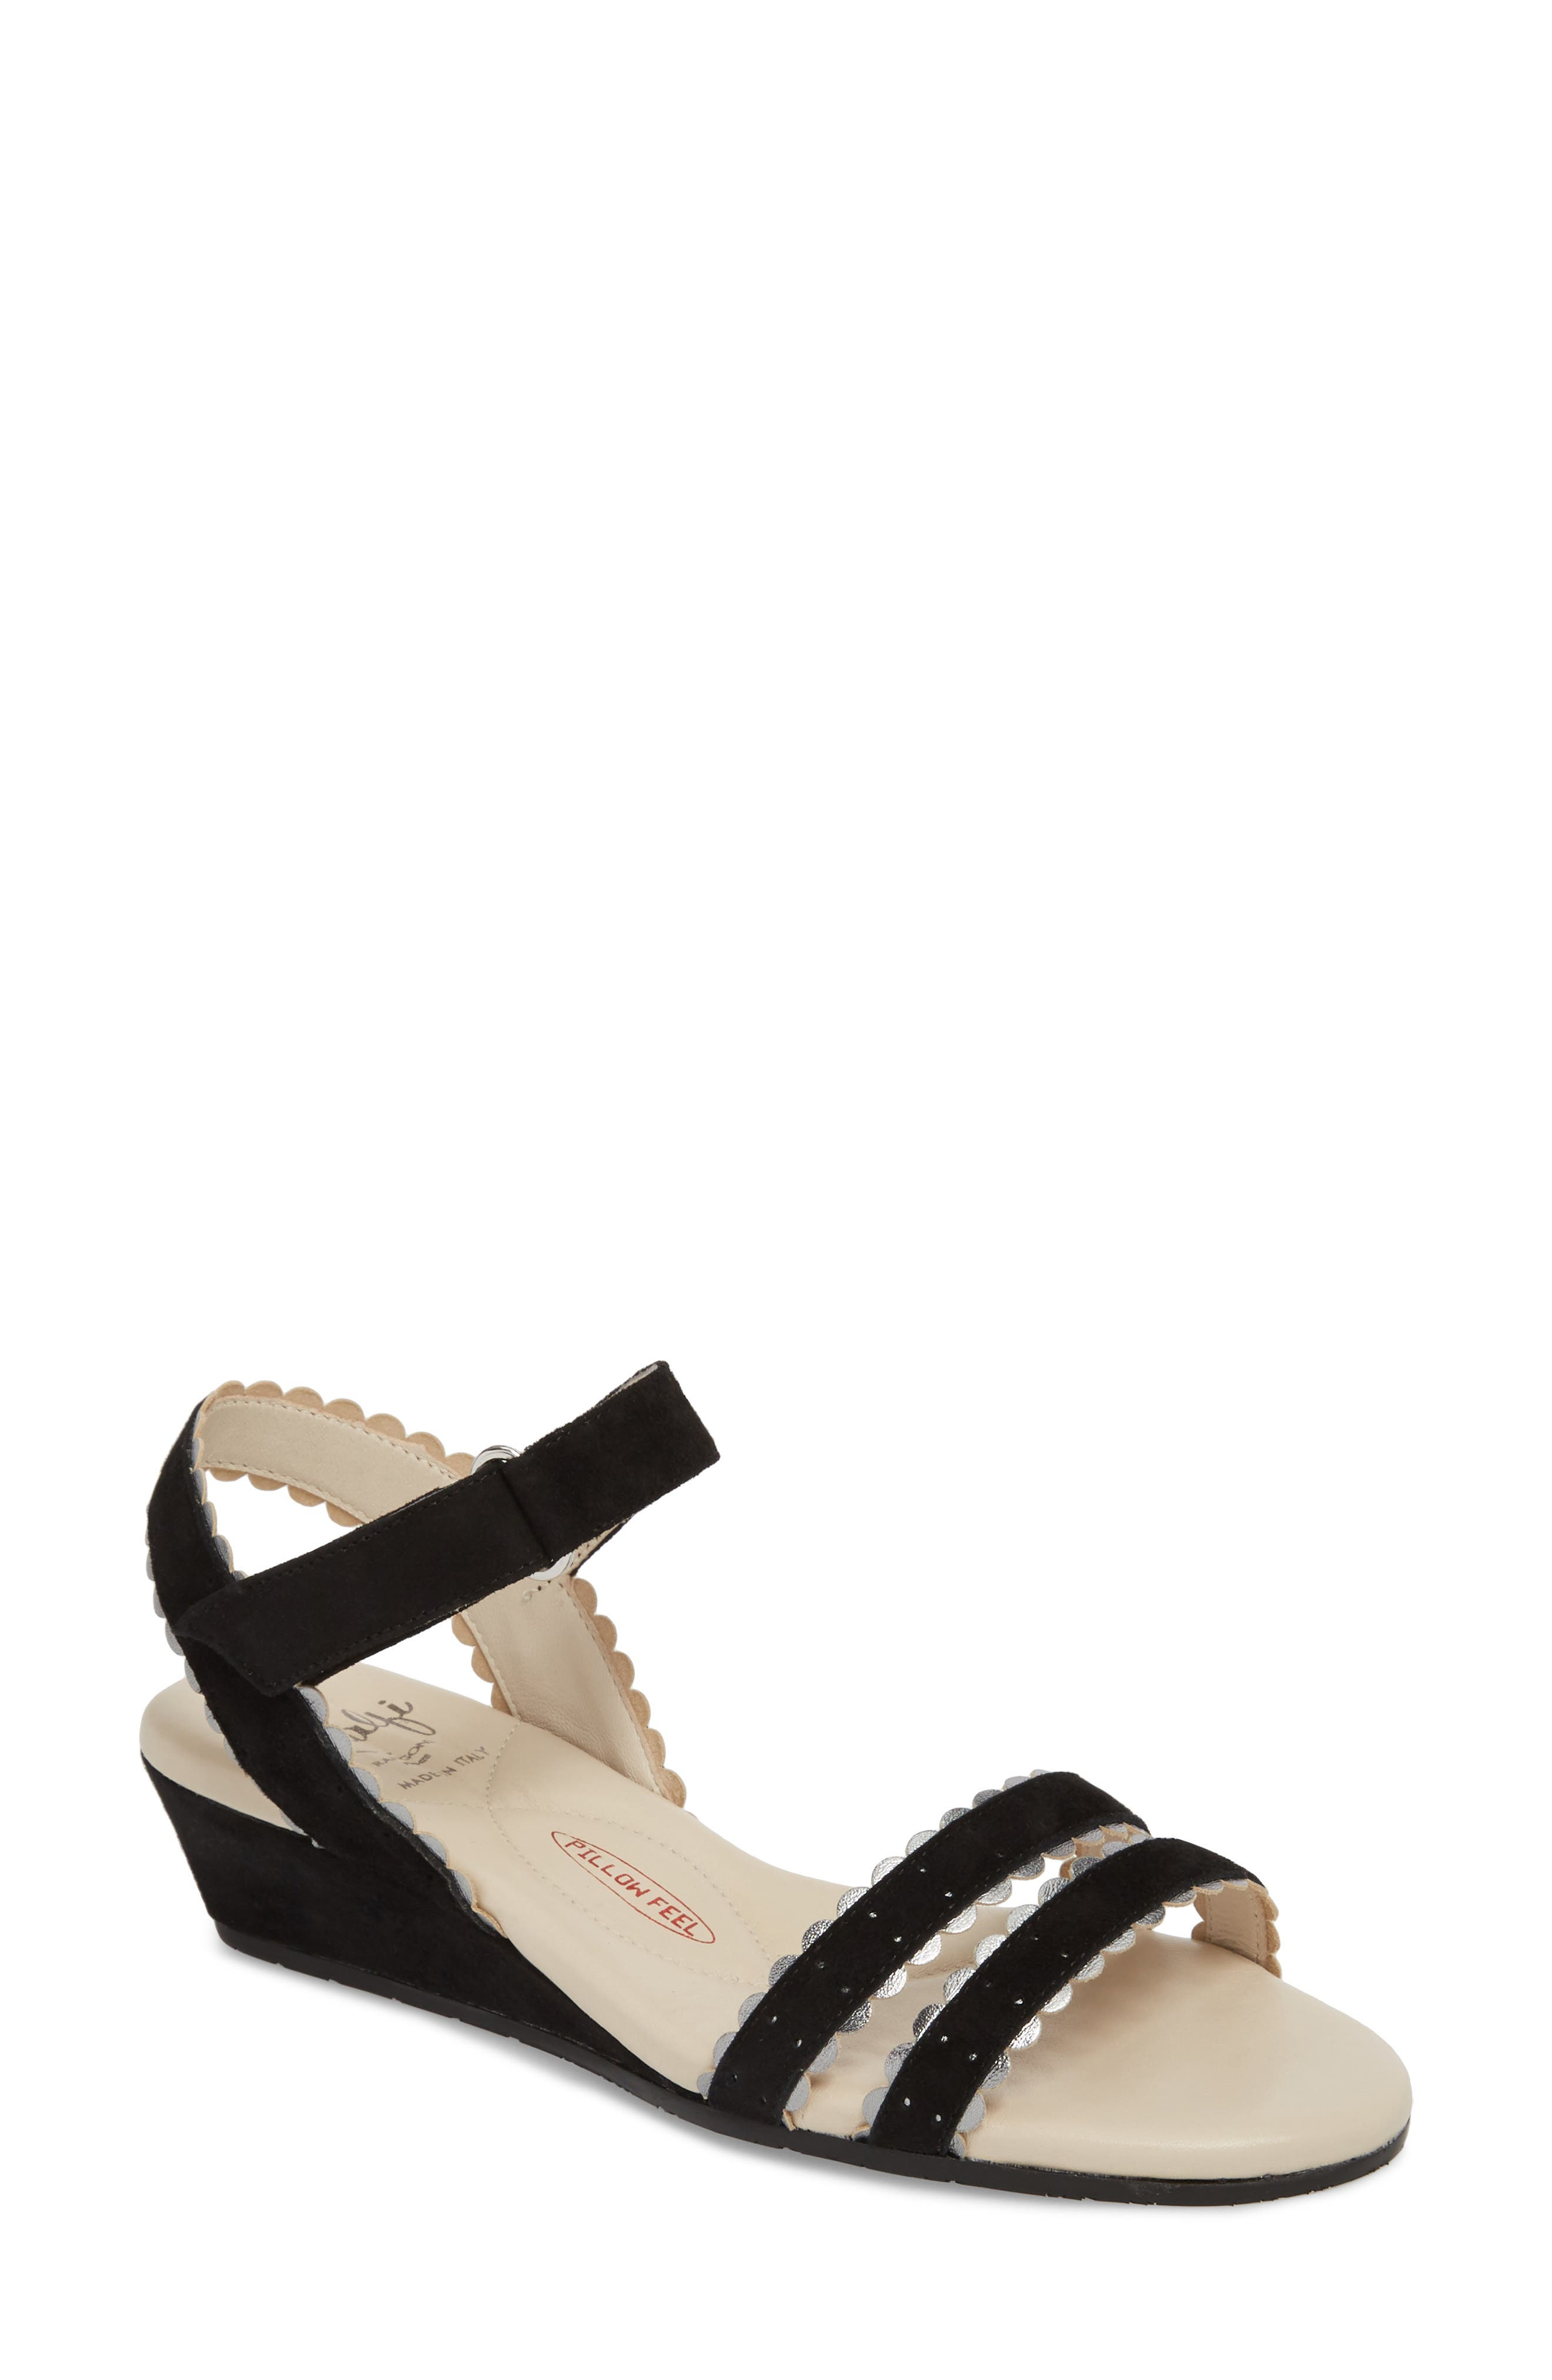 AMALFI BY RANGONI Messina Wedge Sandal in Black Suede